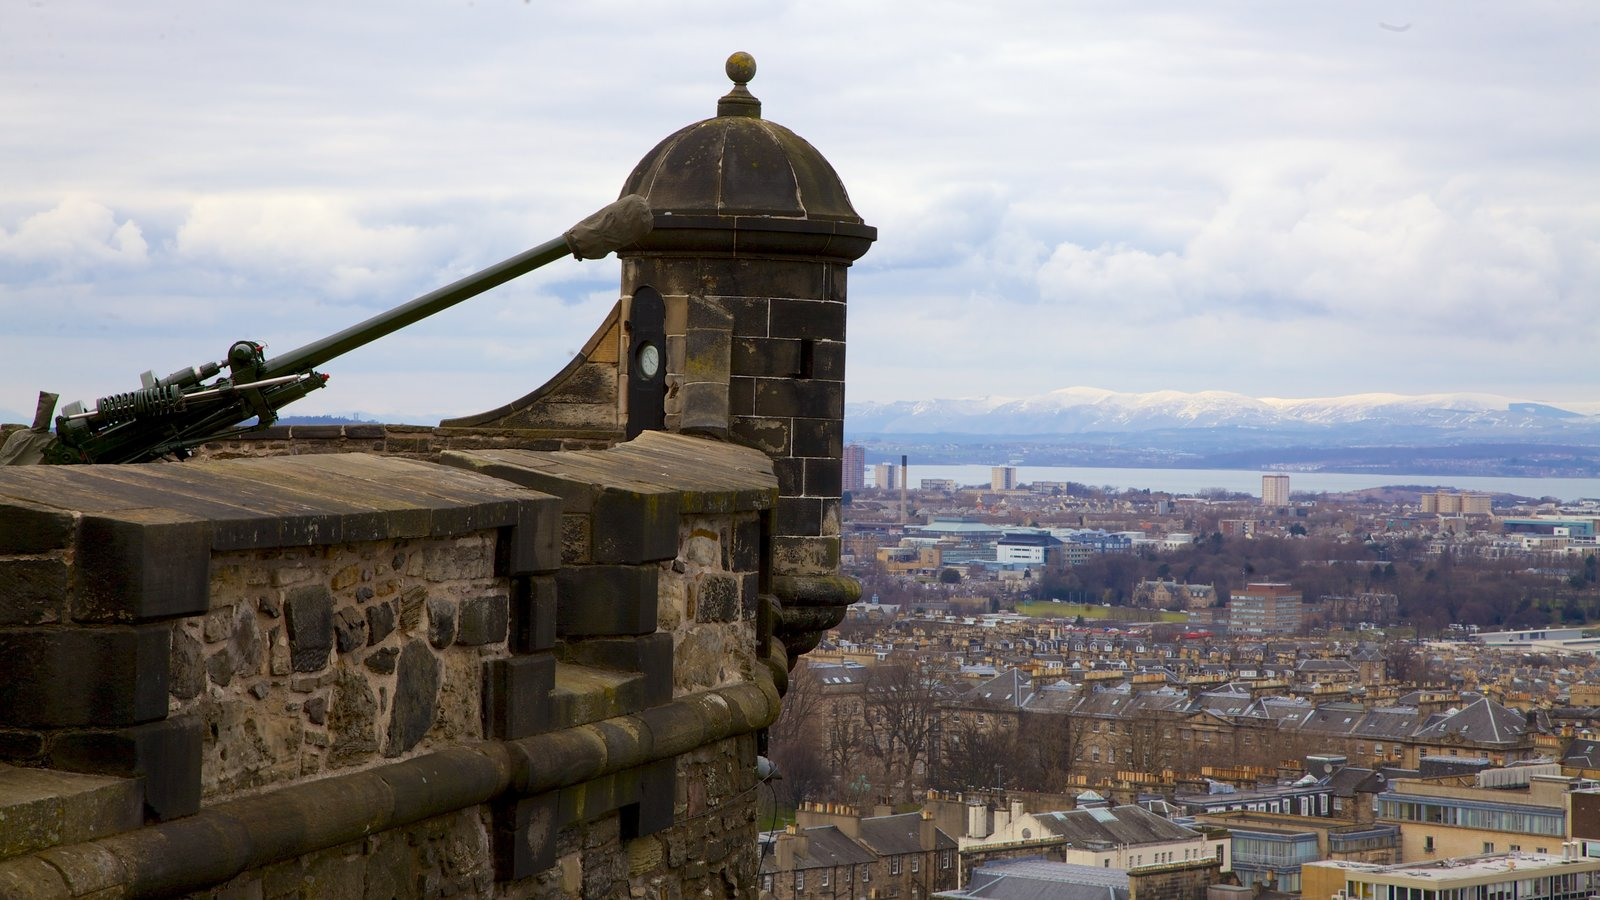 Edinburgh Castle featuring heritage architecture, a city and skyline